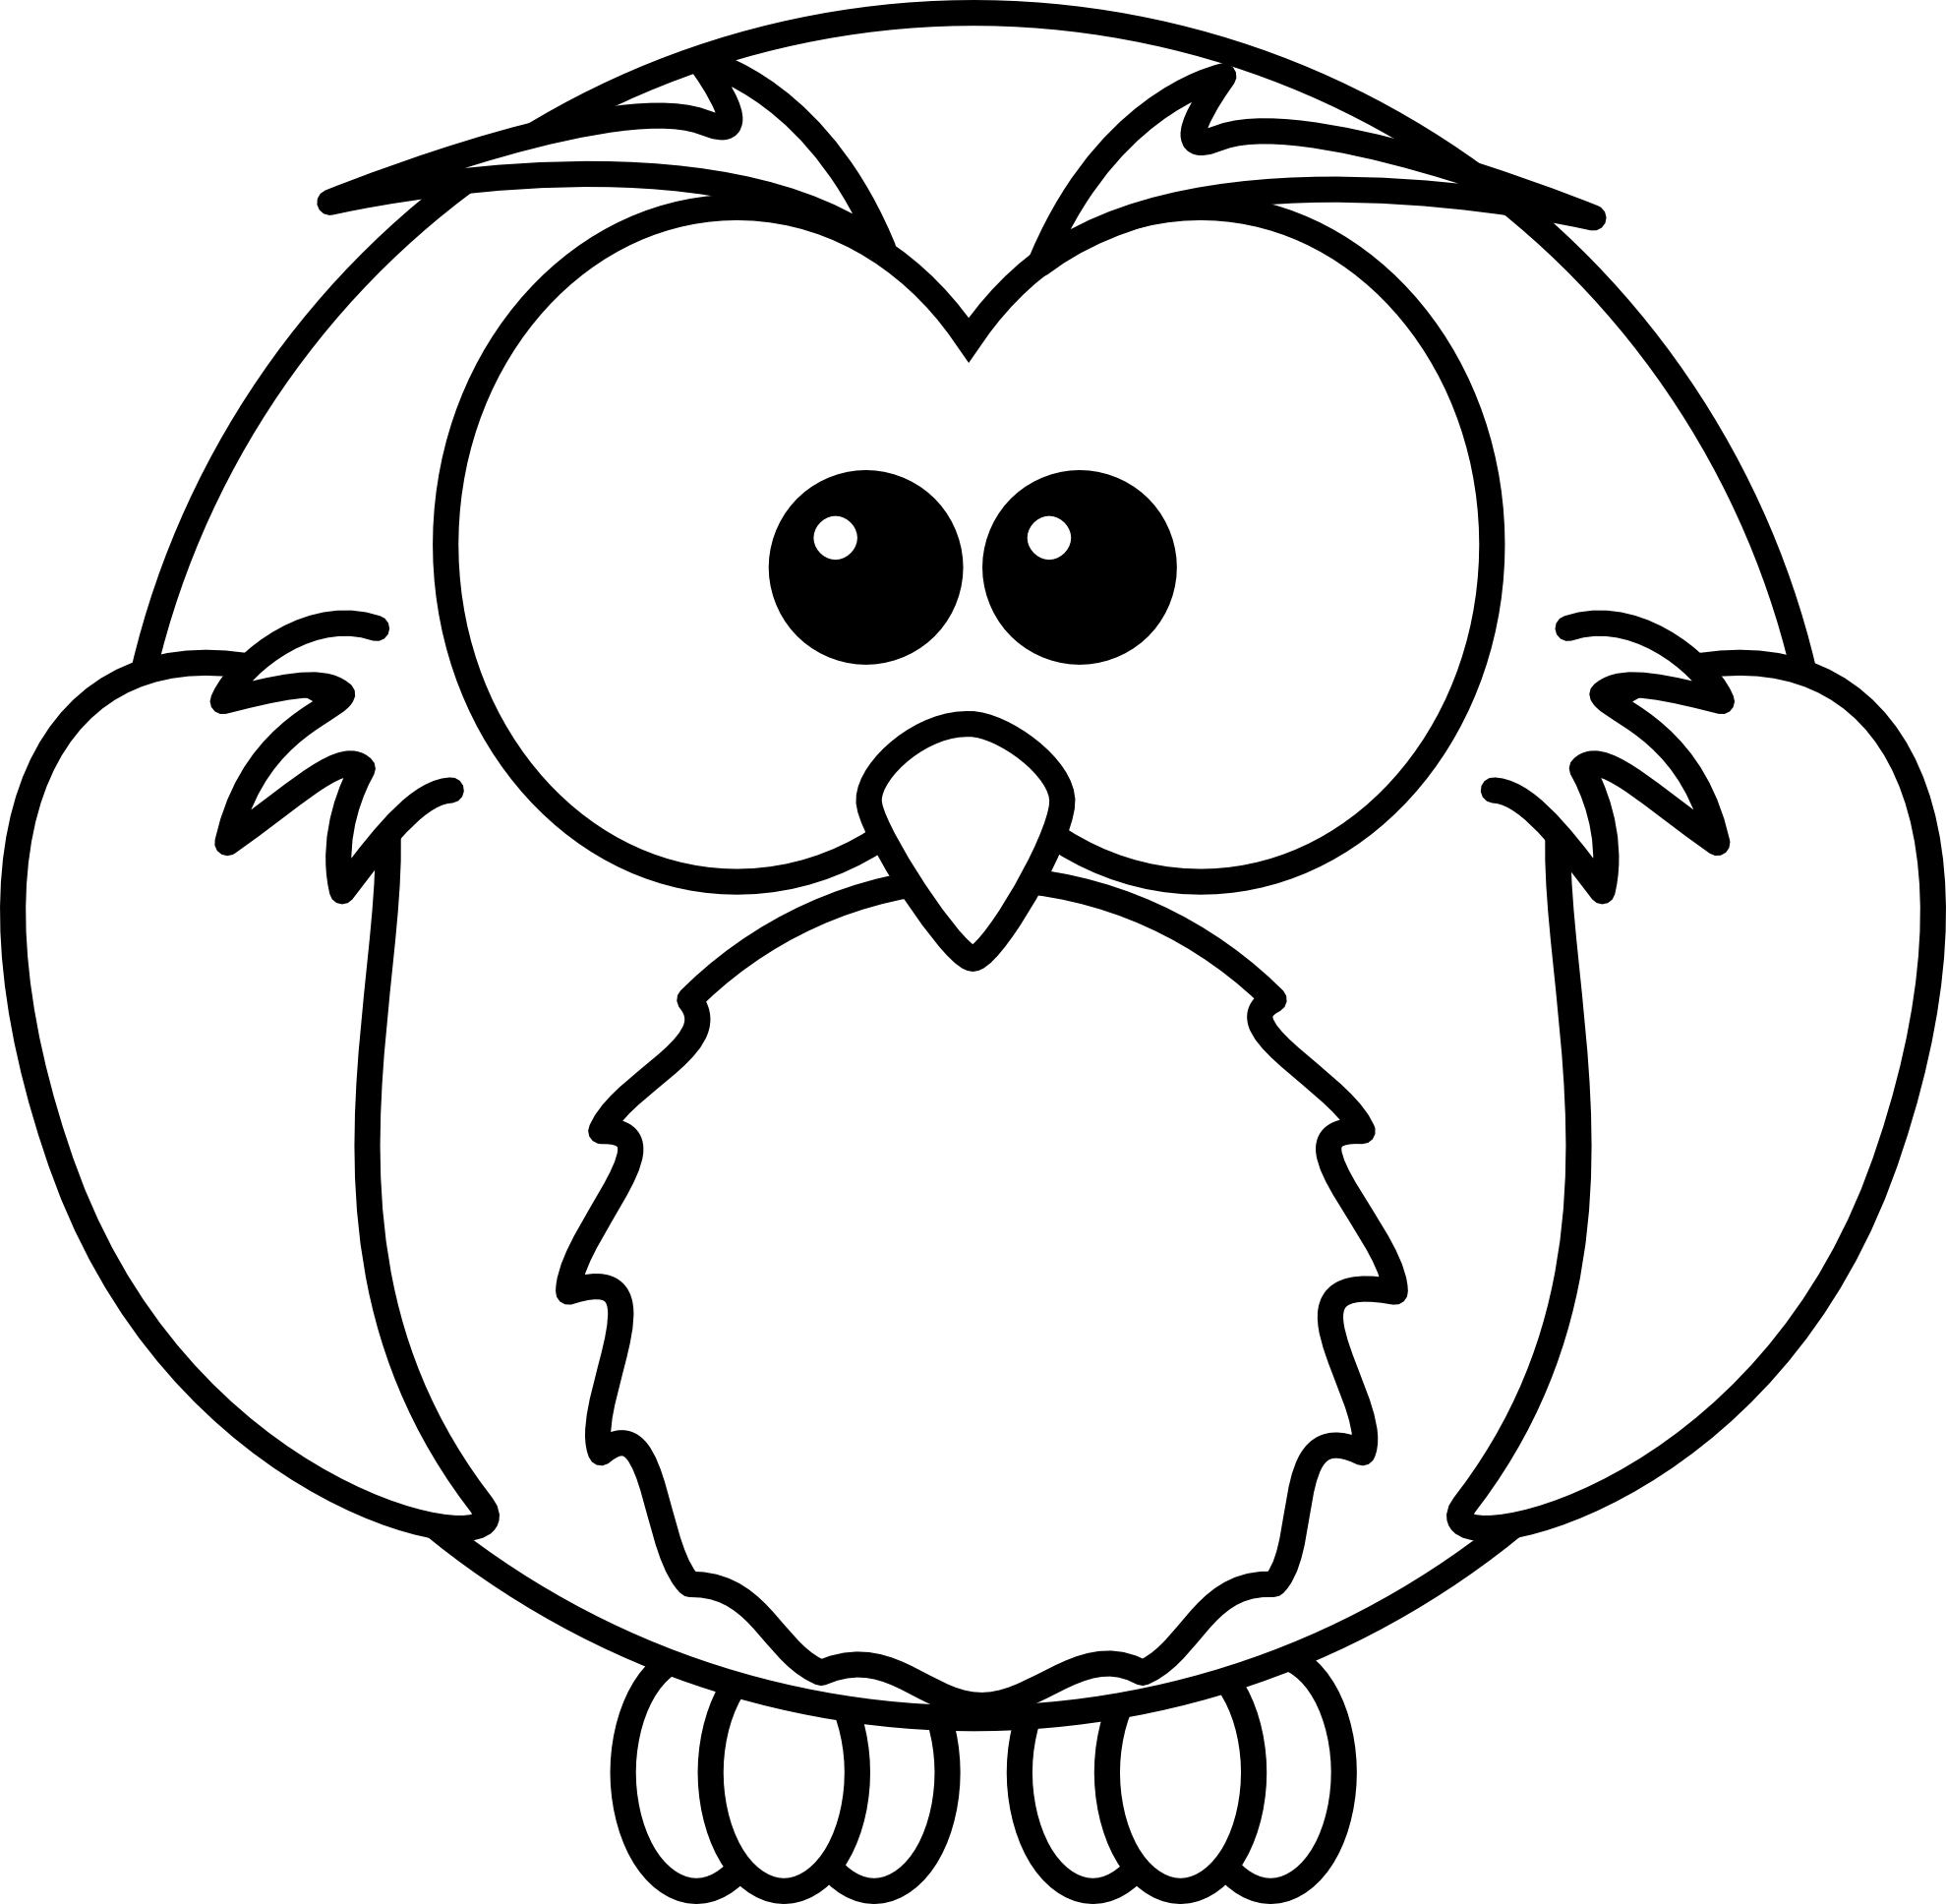 school owl clipart black and white clipart panda free clipart images rh clipartpanda com Black and White Cartoon Owl Black and White Cartoon Owl